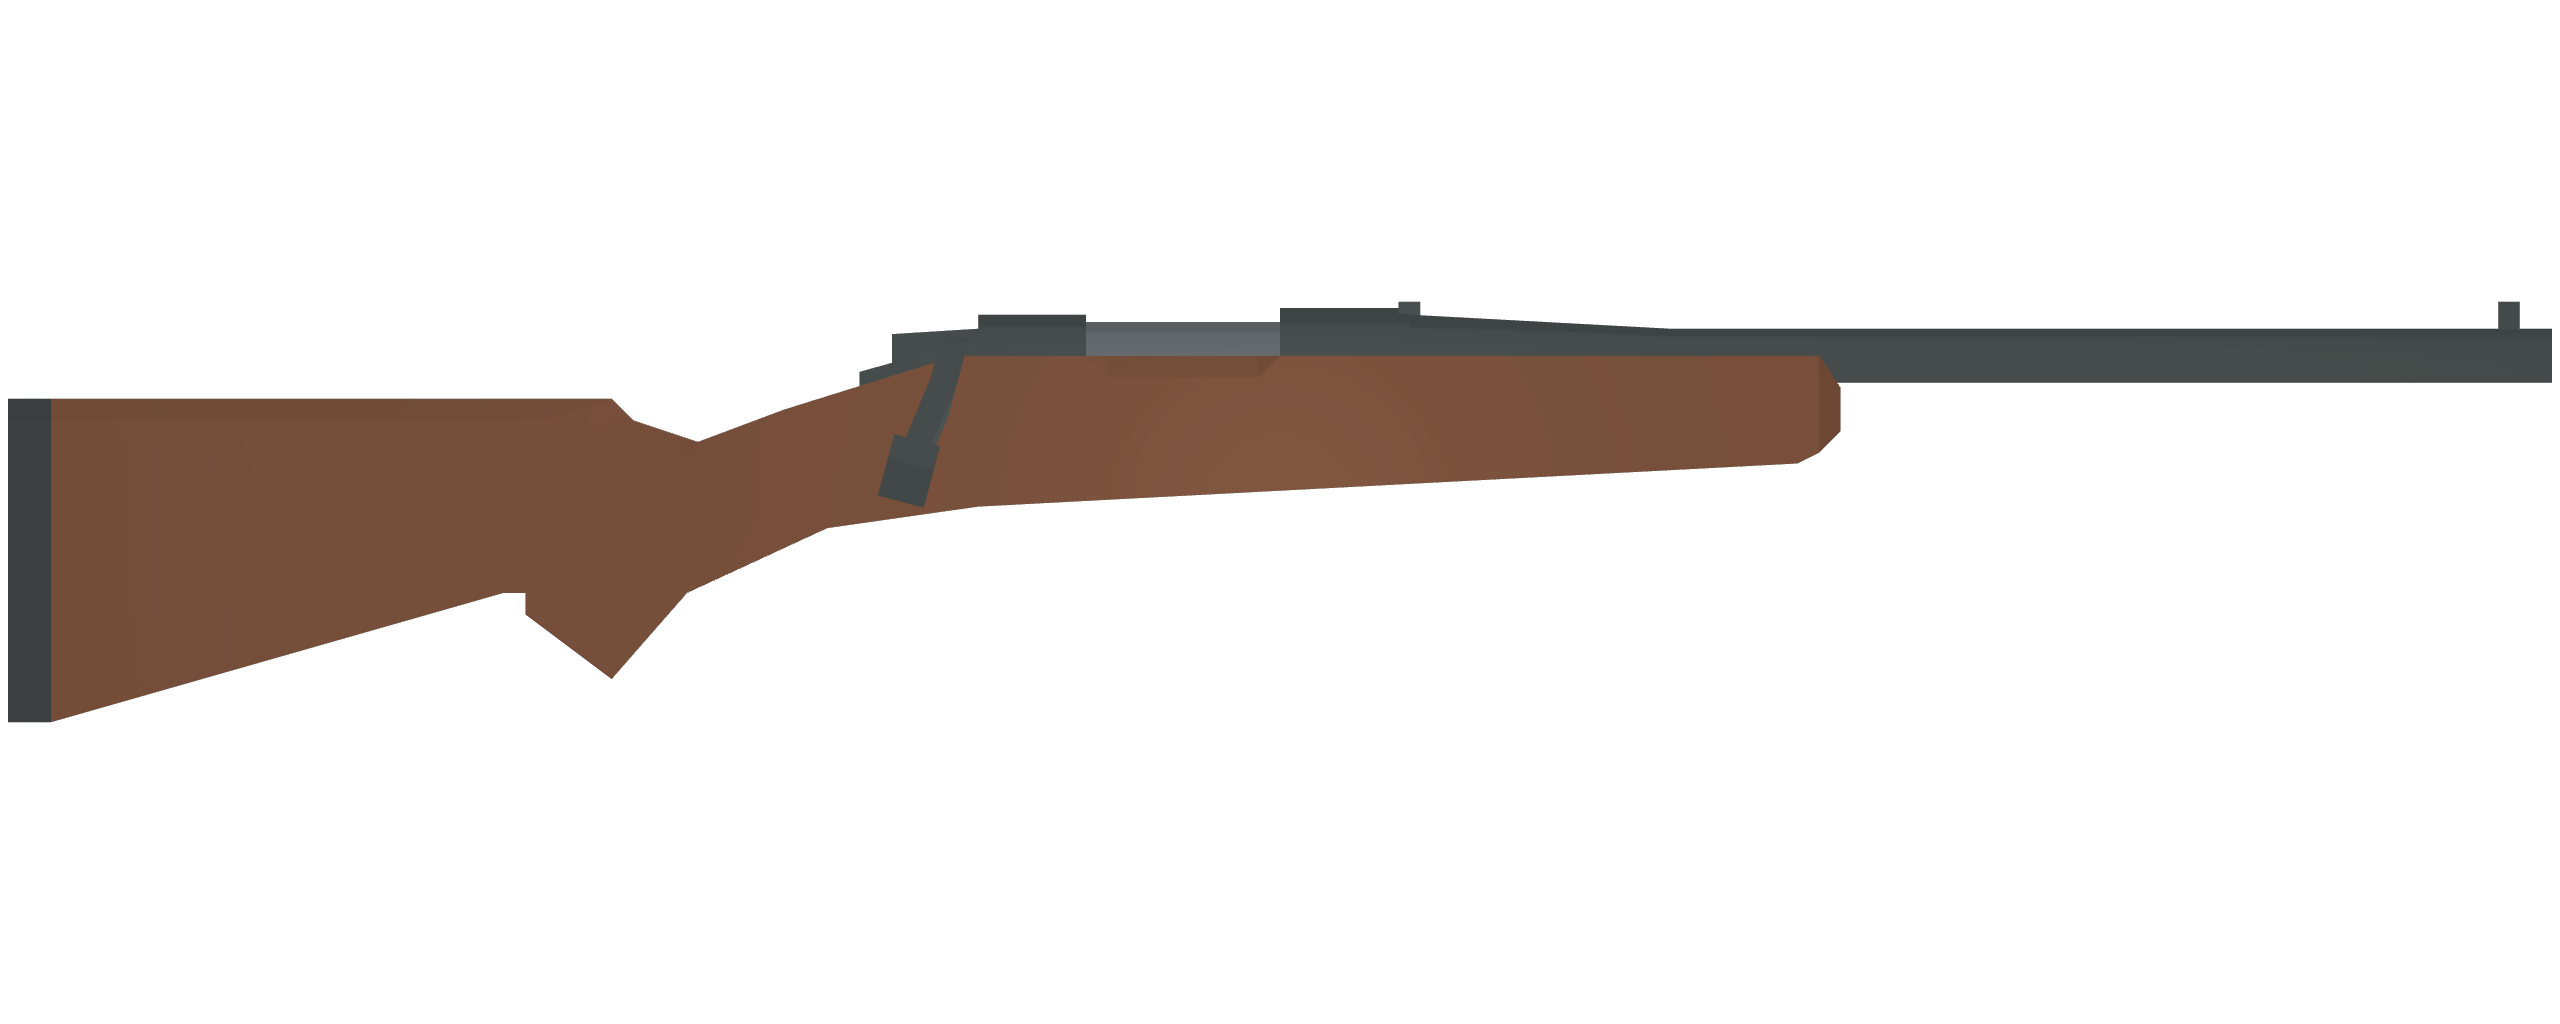 Unturned Uncreated Warfare Mods & All ID List + Attachments - Neutral Weapons - 6F49E48